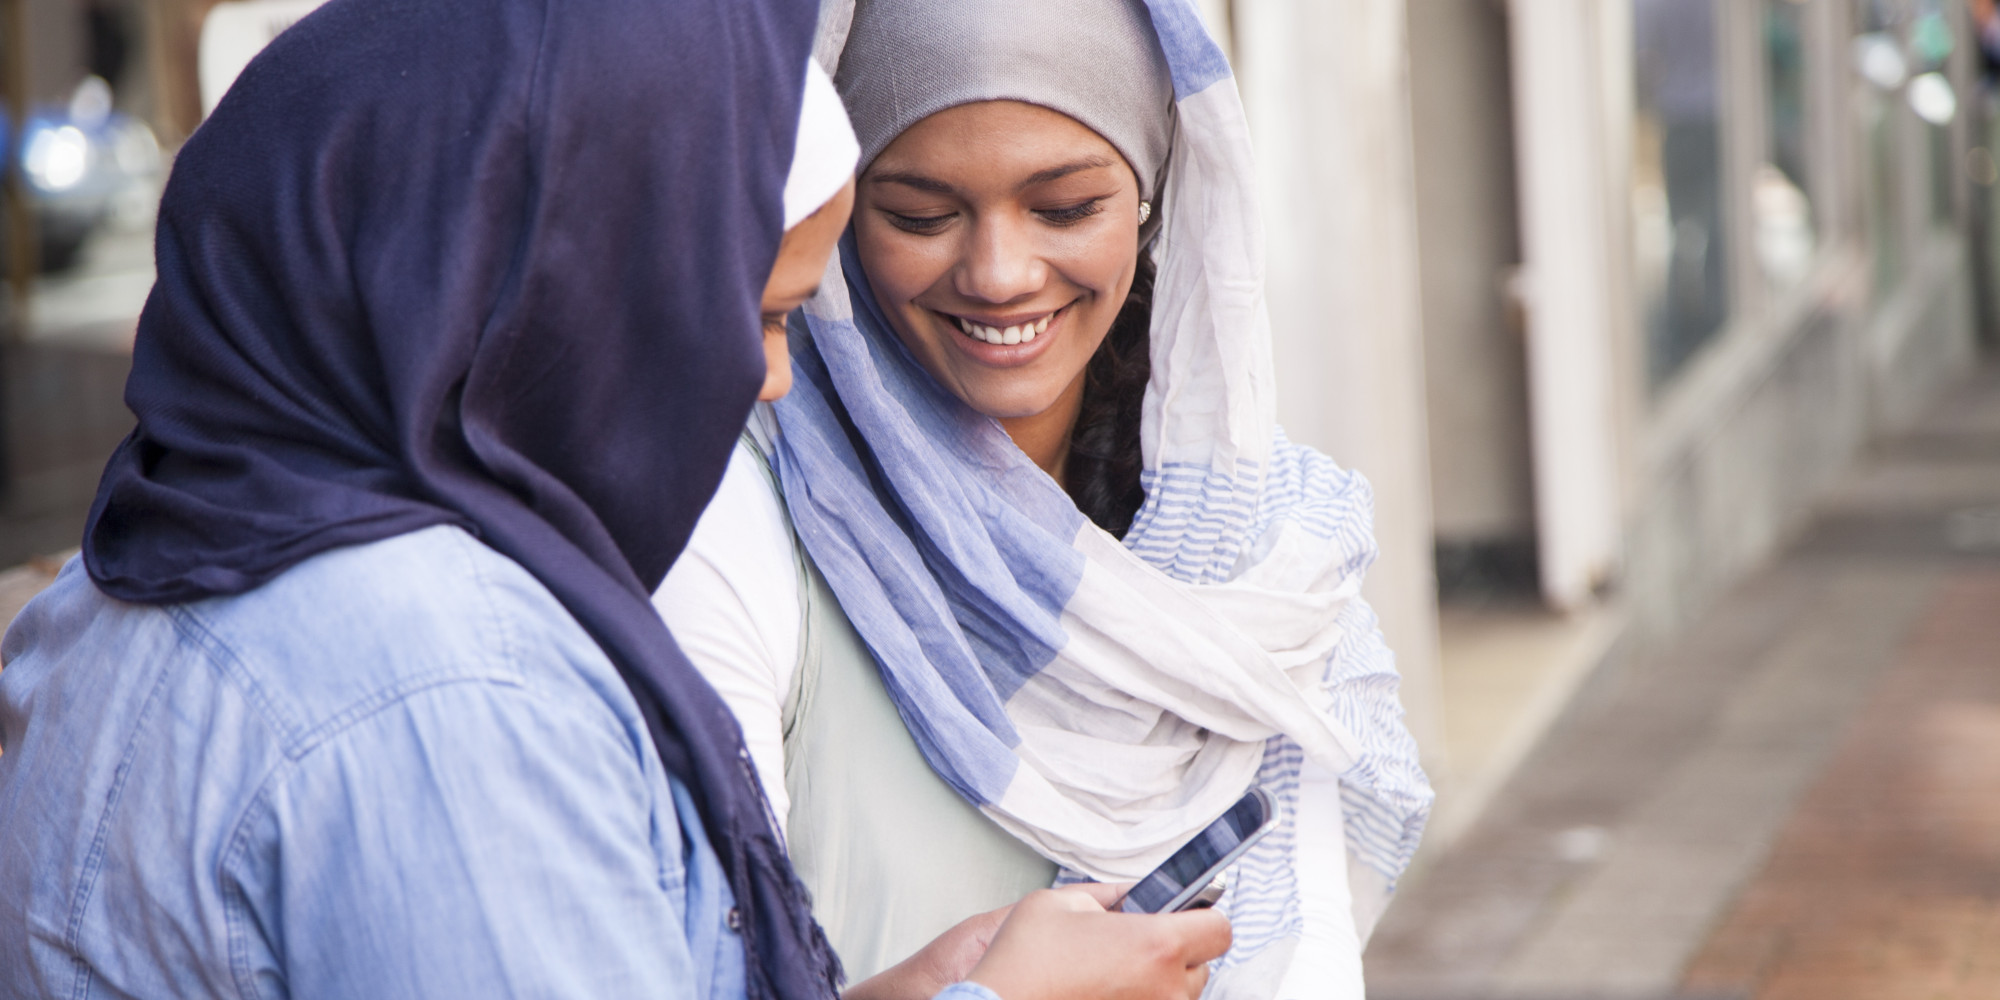 bernardsville muslim girl personals That's what you can expect when you date a muslim girl who carries her culture with her what men don't get about dating muslim women.